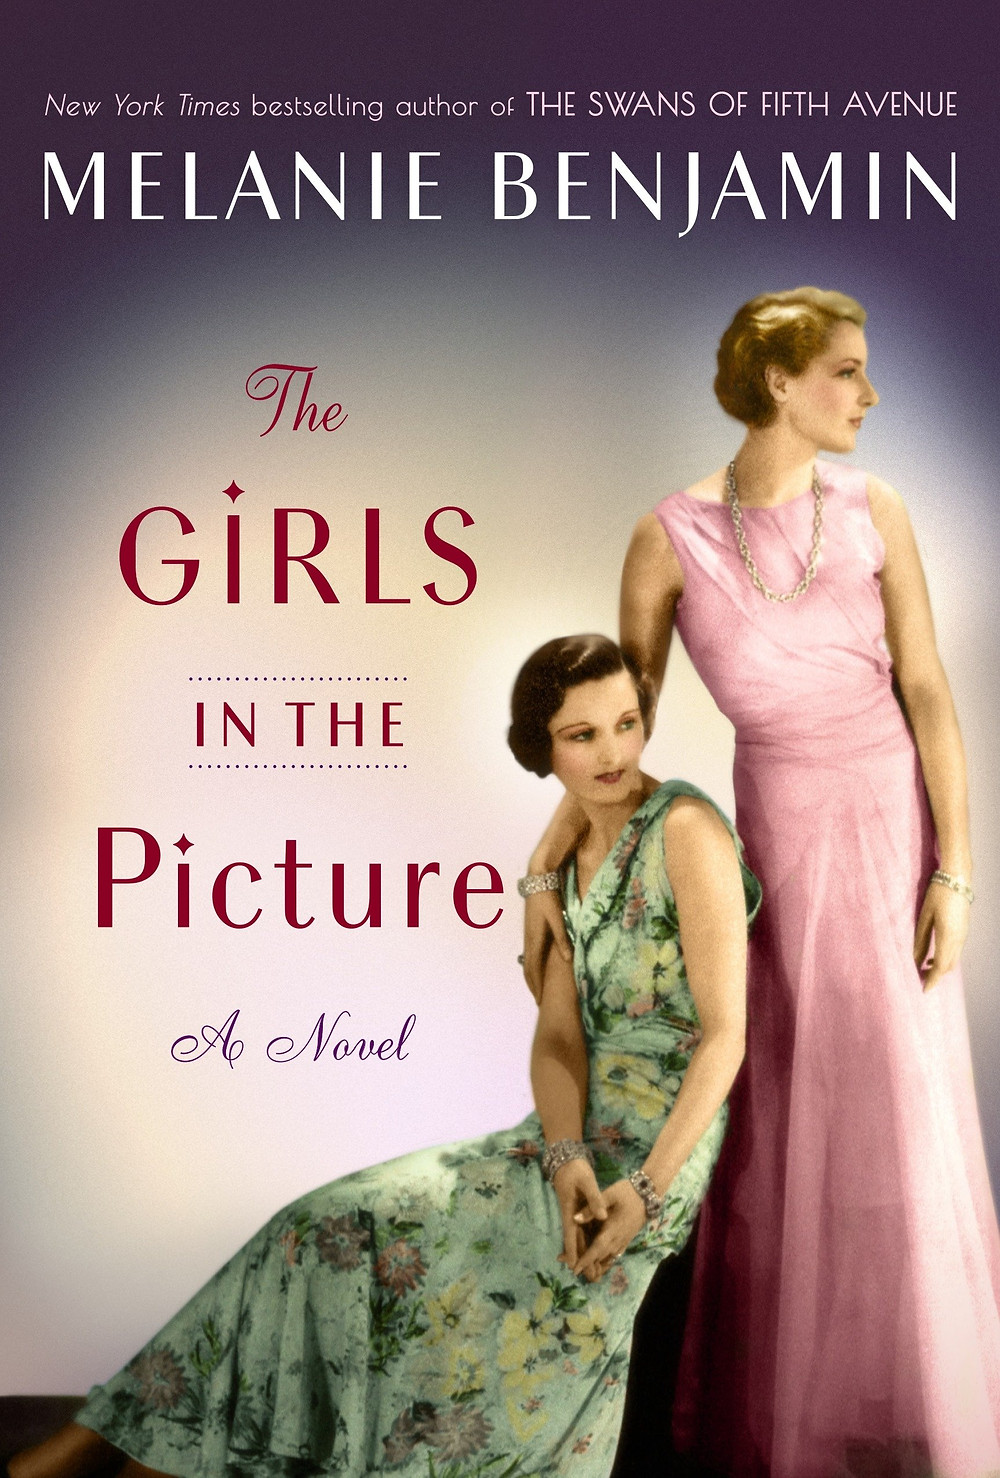 Book cover of The Girls in the Picture by Melanie Benjamin.